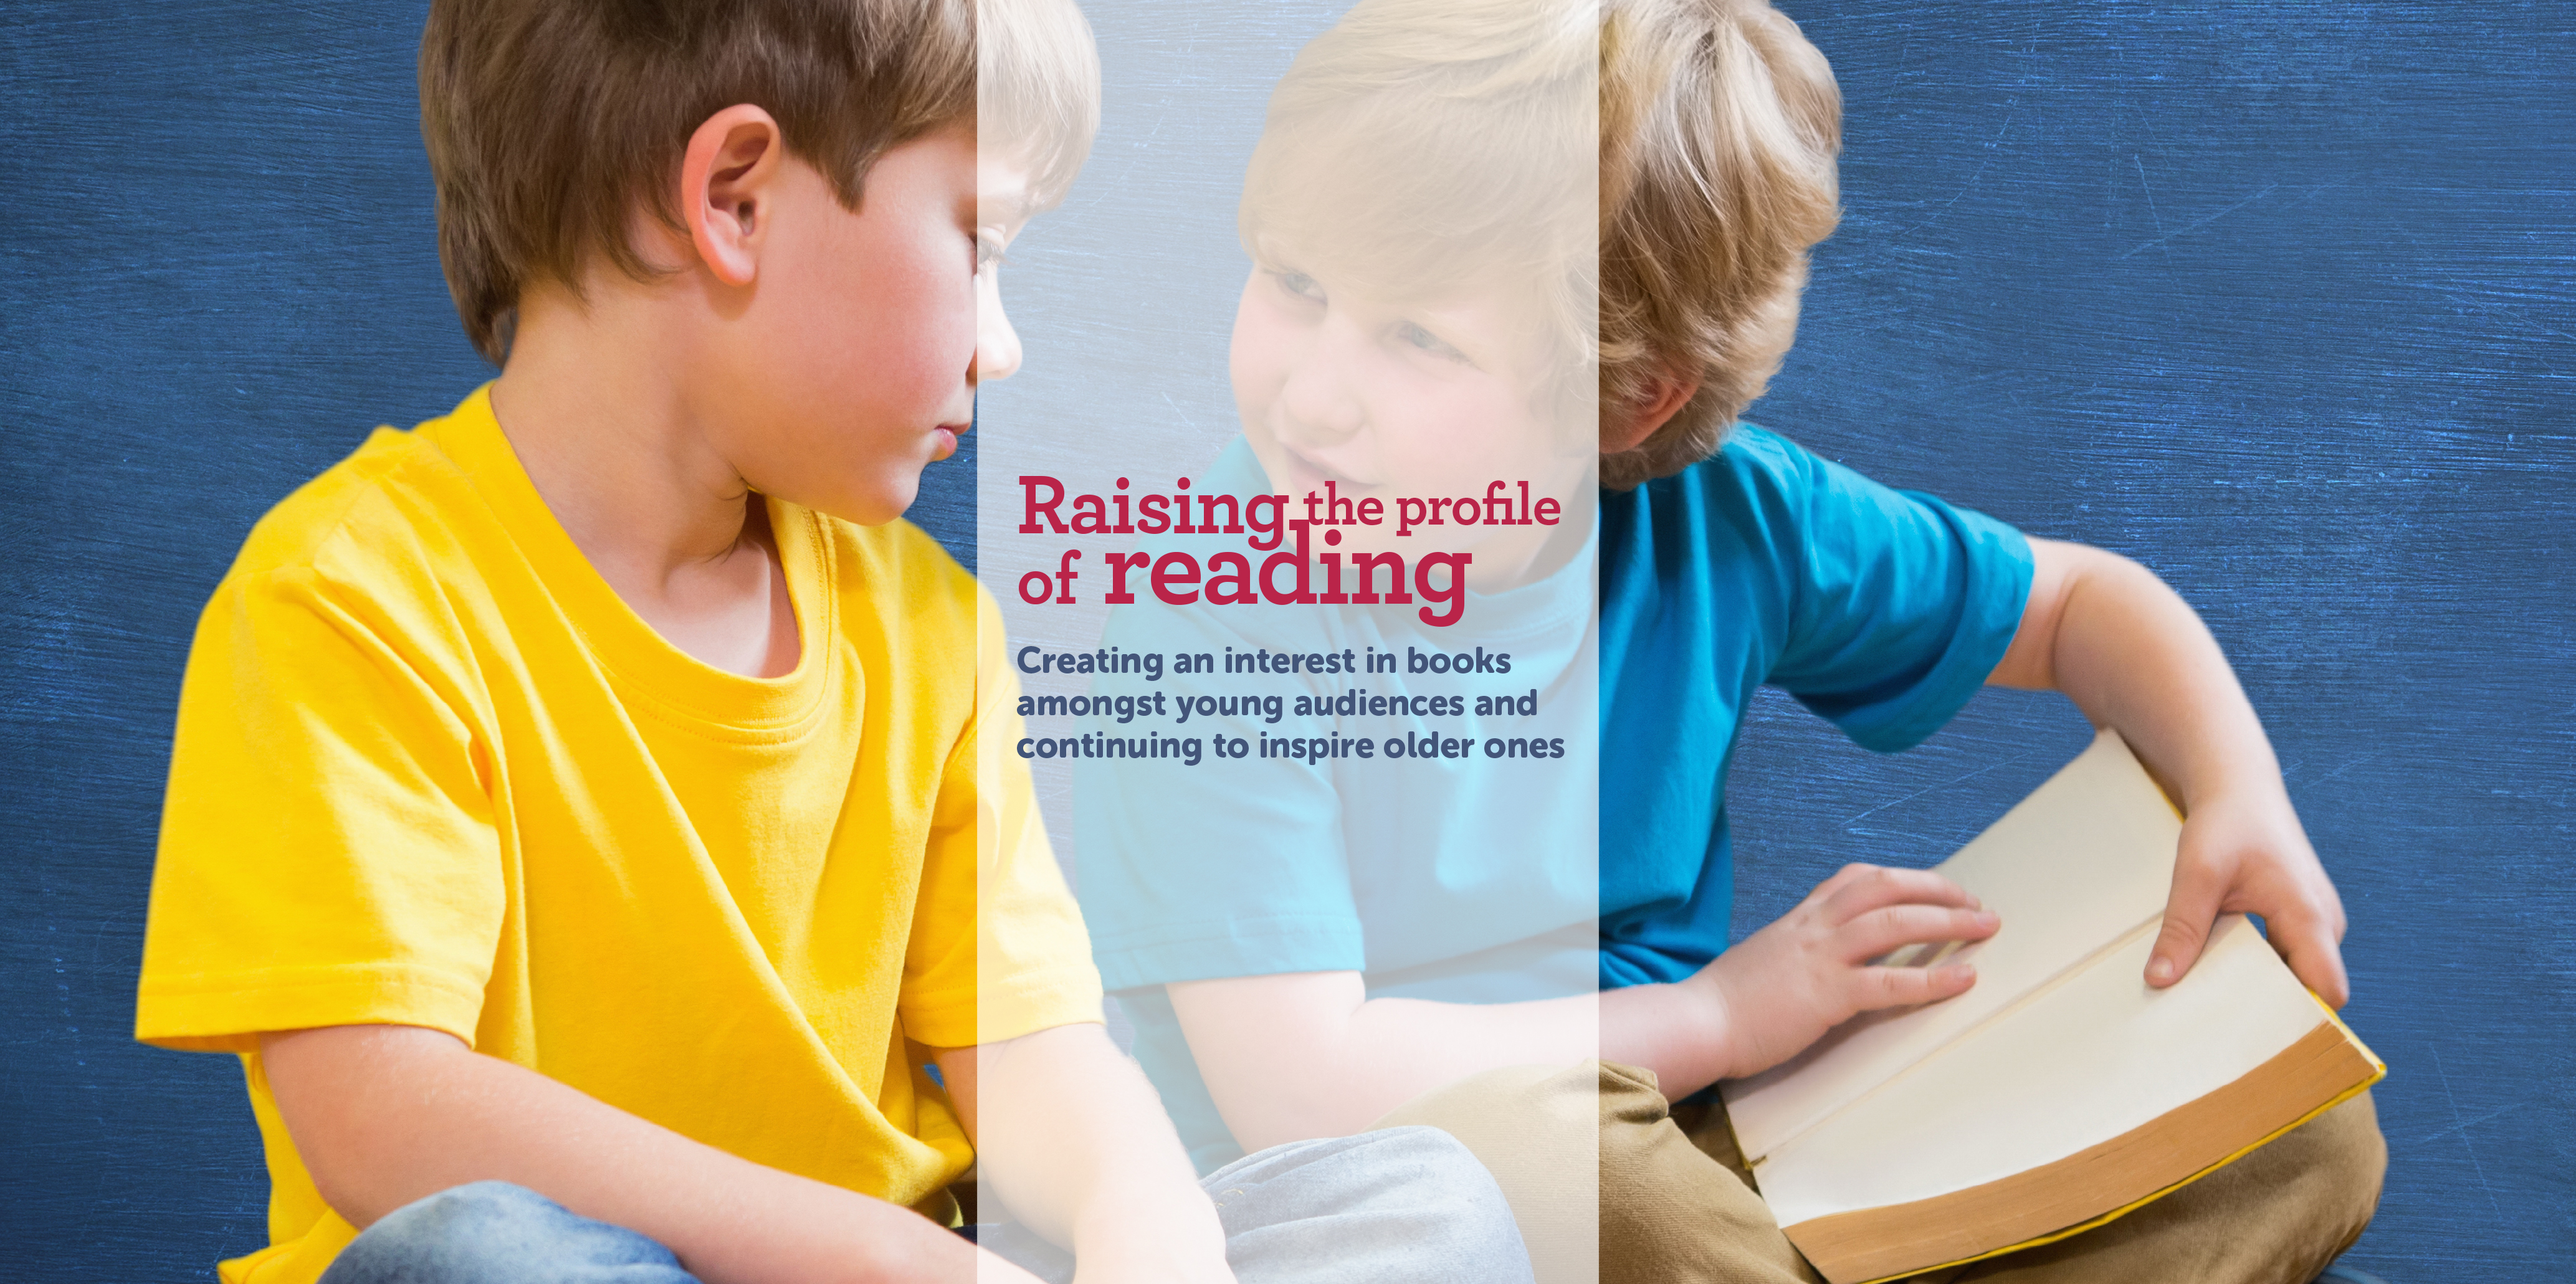 Raising the profile of reading